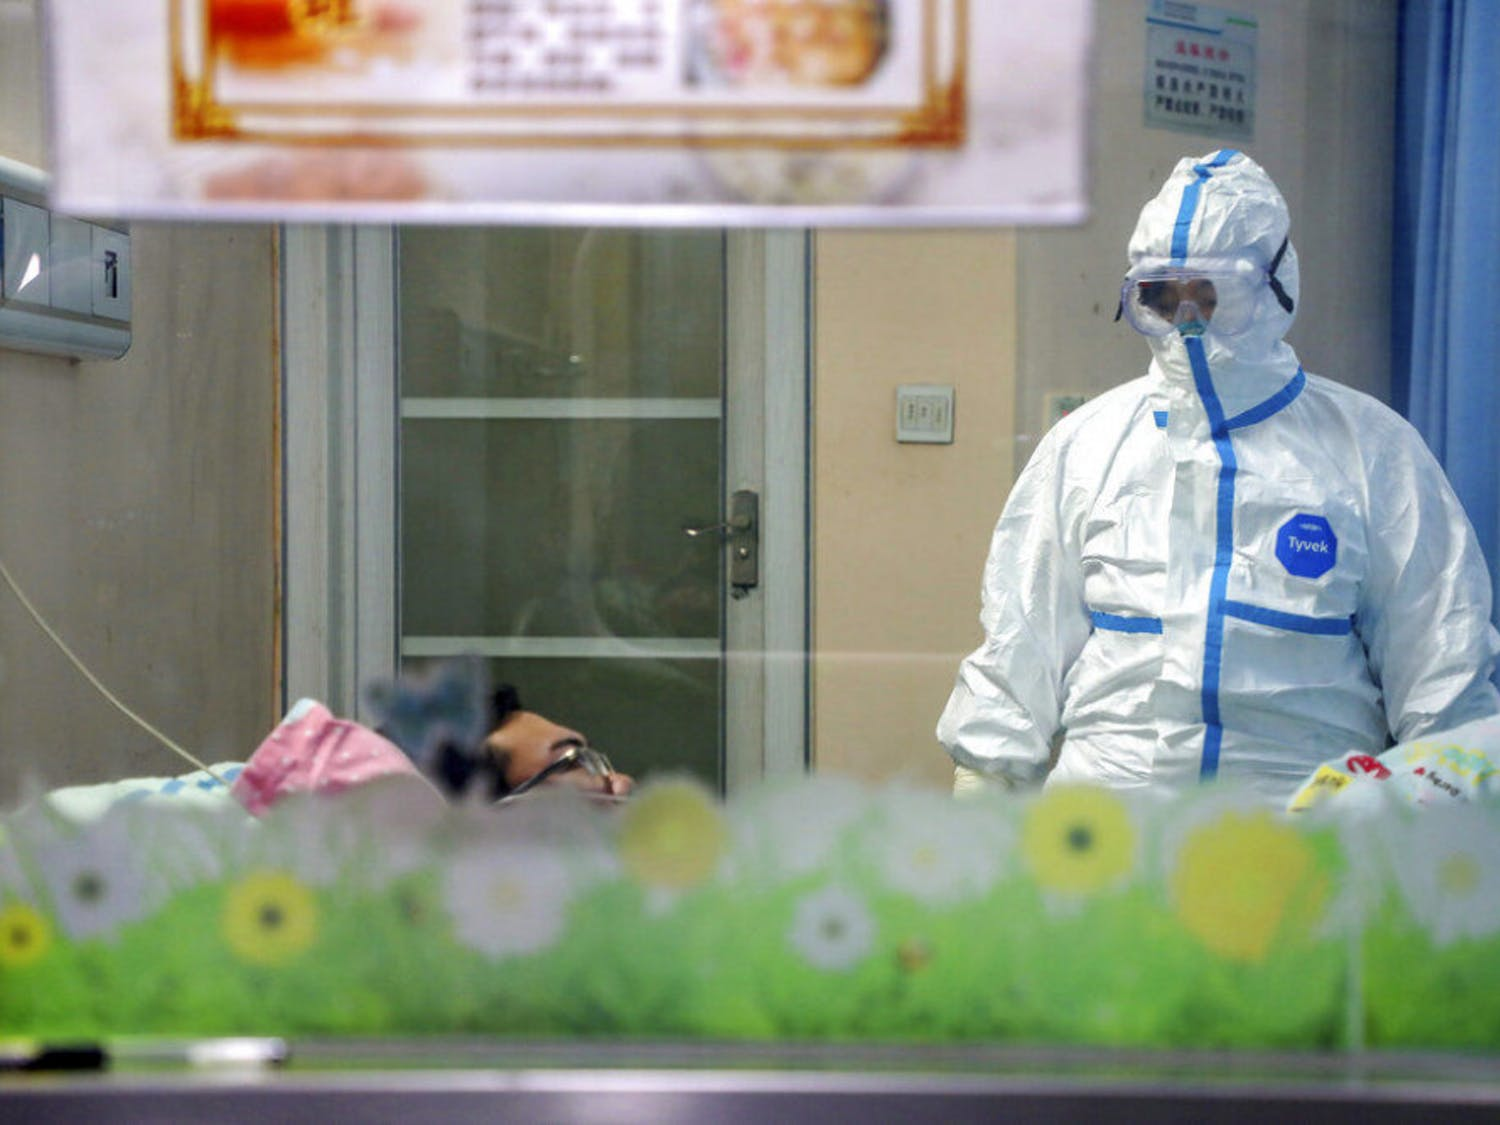 A doctor attends to a patient in an isolation ward at a hospital in Wuhan in central China's Hubei Province, Thursday, Jan. 30, 2020. China counted 170 deaths from a new virus Thursday and more countries reported infections, including some spread locally, as foreign evacuees from China's worst-hit region returned home to medical observation and even isolation.